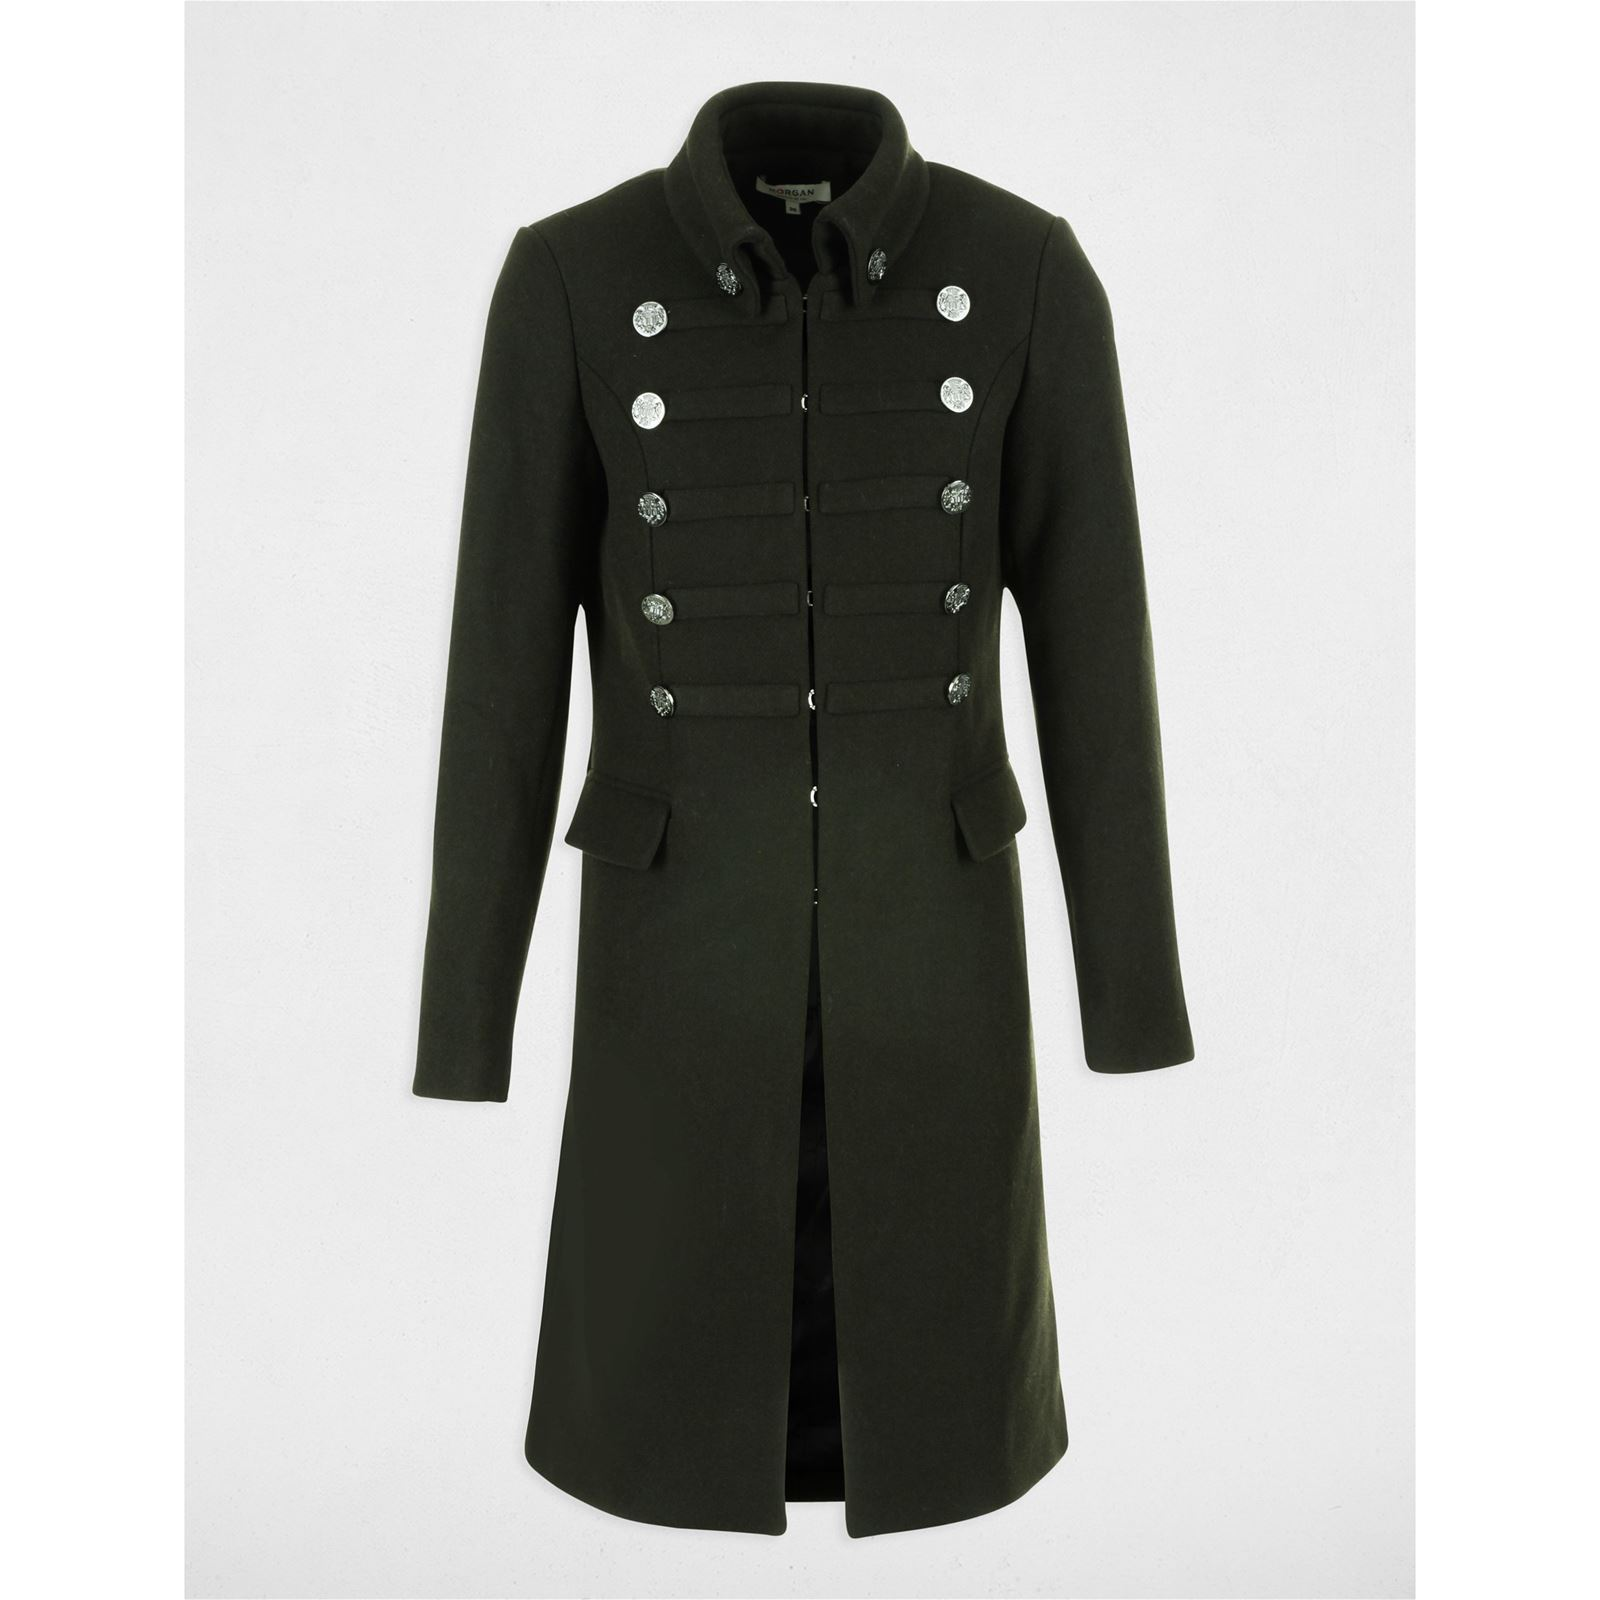 Morgan Gaspar - Manteau officier long 39% laine - kaki   BrandAlley cd61c695de89